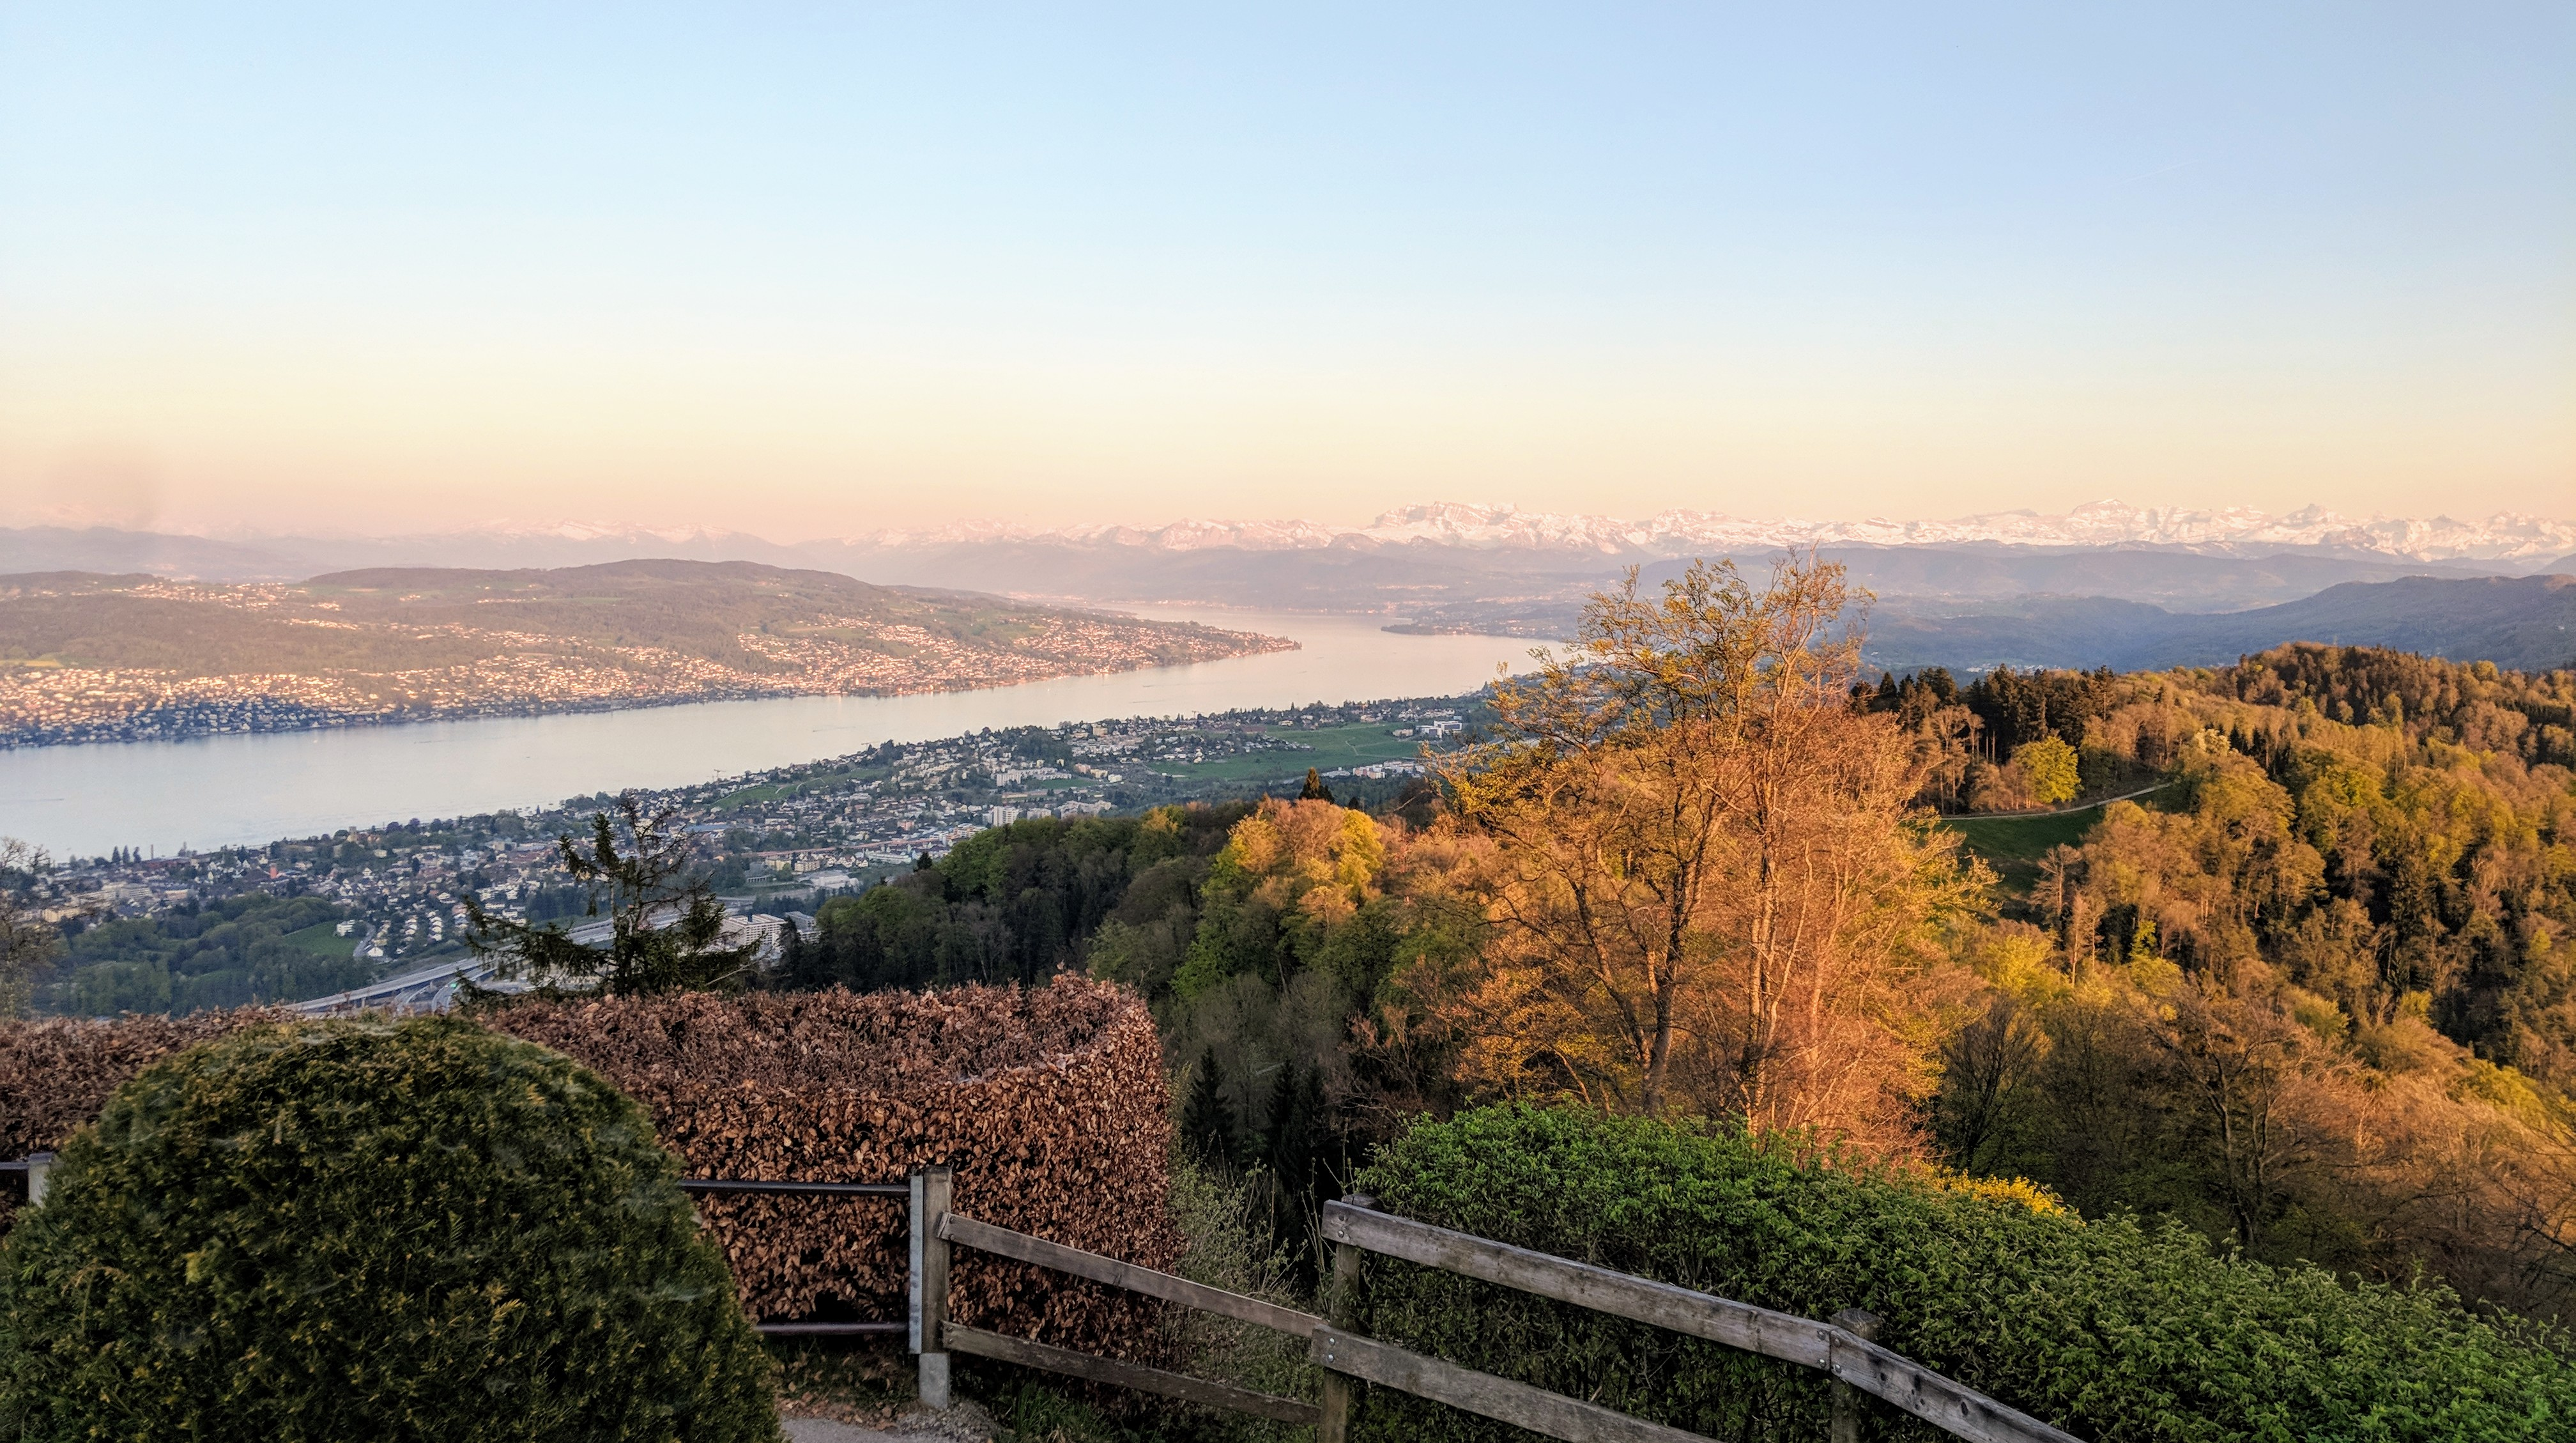 Running route in Zurich - View From Uetliberg Over Lake